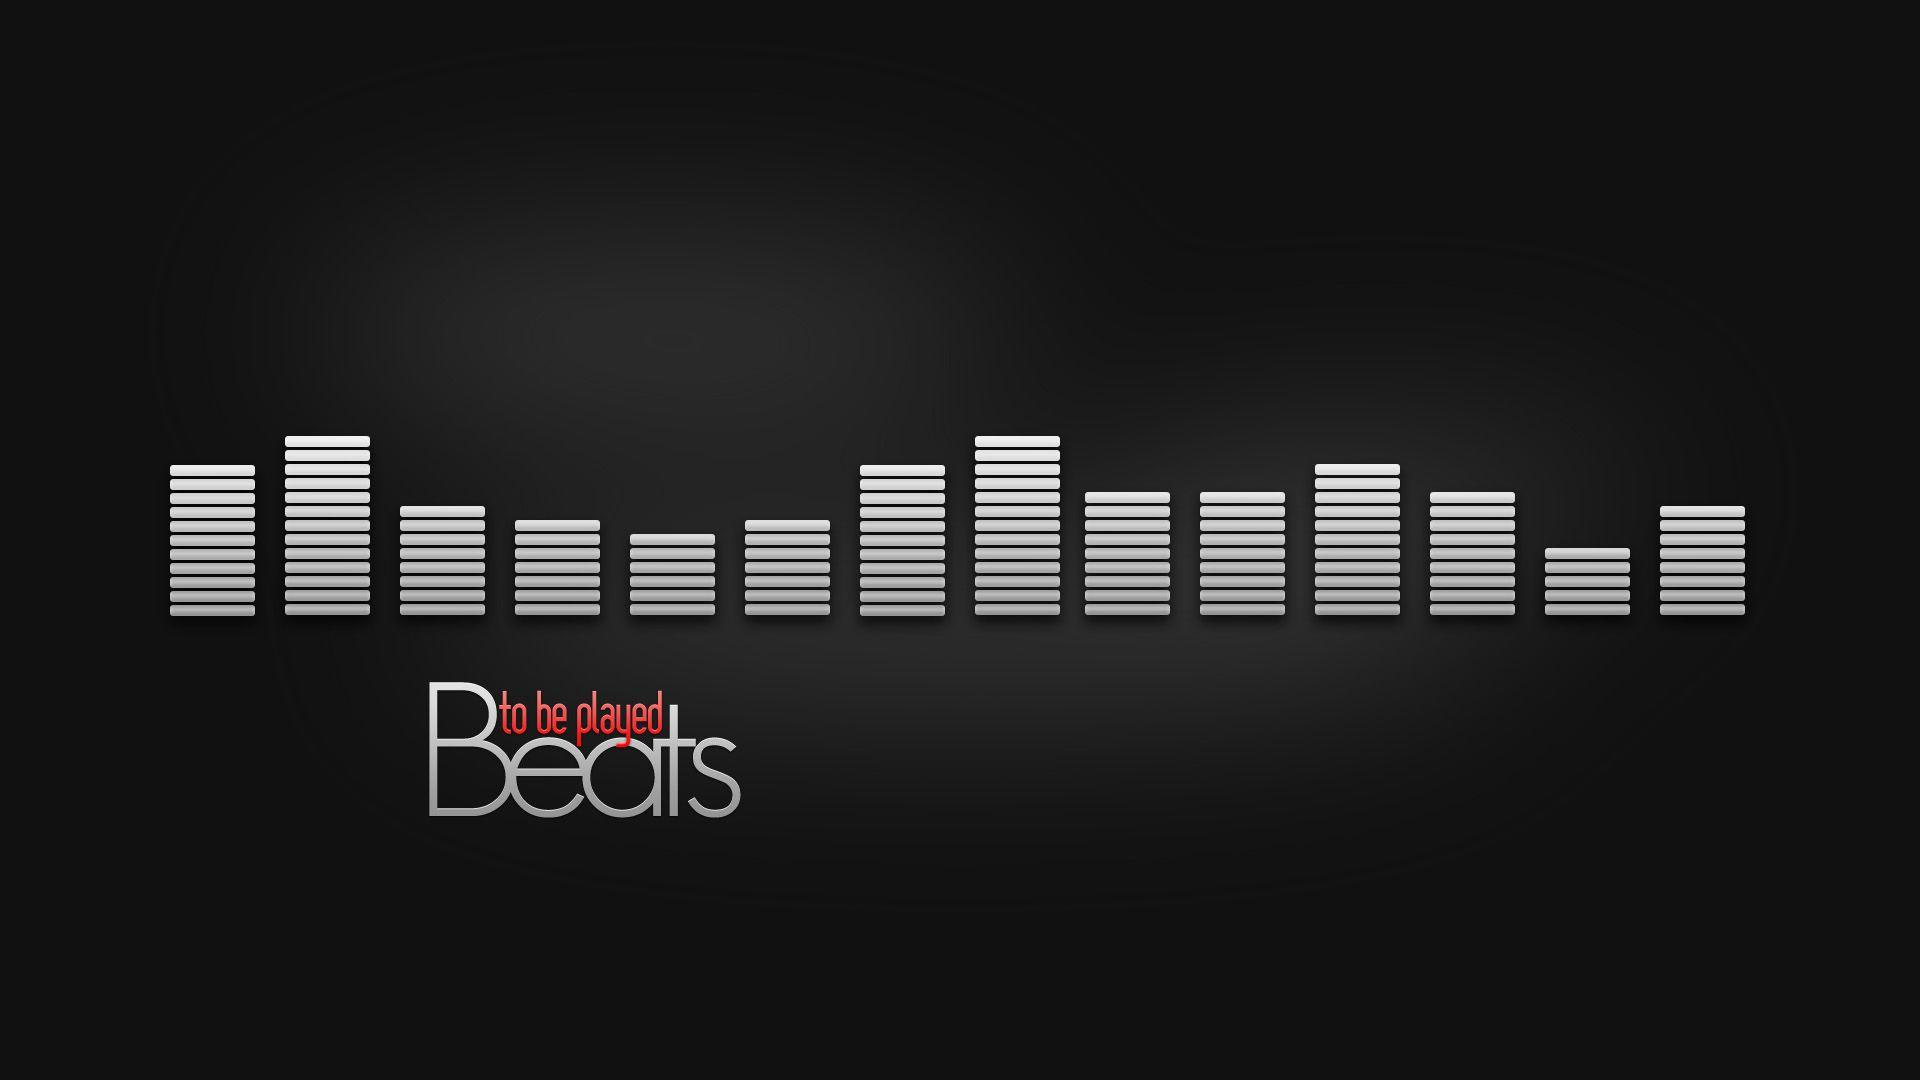 Producer wallpapers wallpaper cave - Music production desktop wallpaper ...